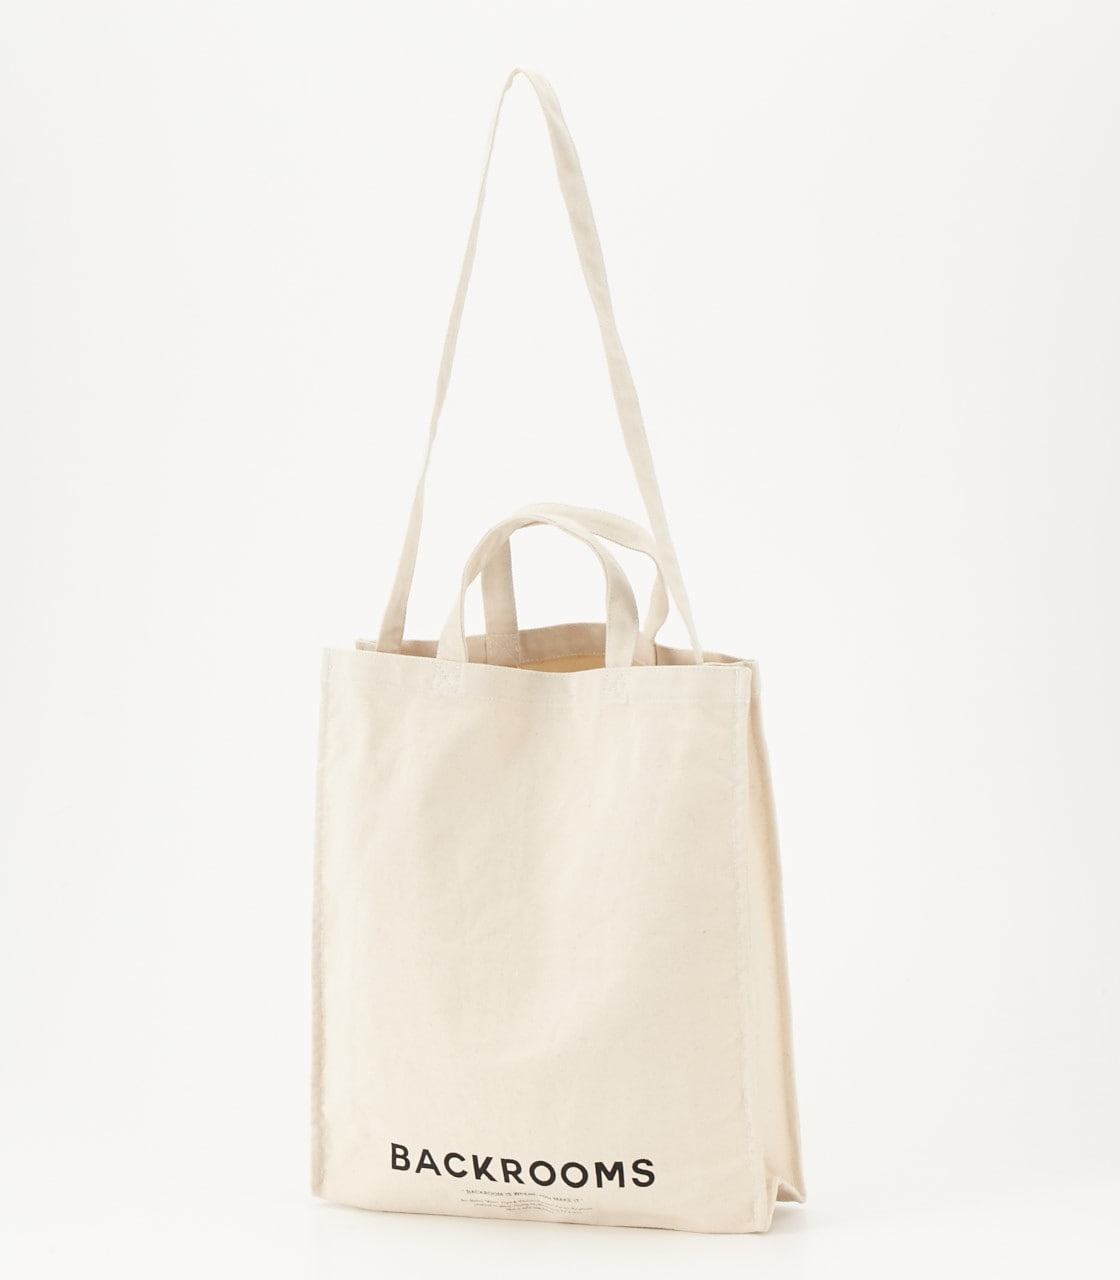 《WEB限定サマーセール》【AZUL BY MOUSSY】BACKROOMSキャンバストートバッグ 詳細画像 柄WHT 1